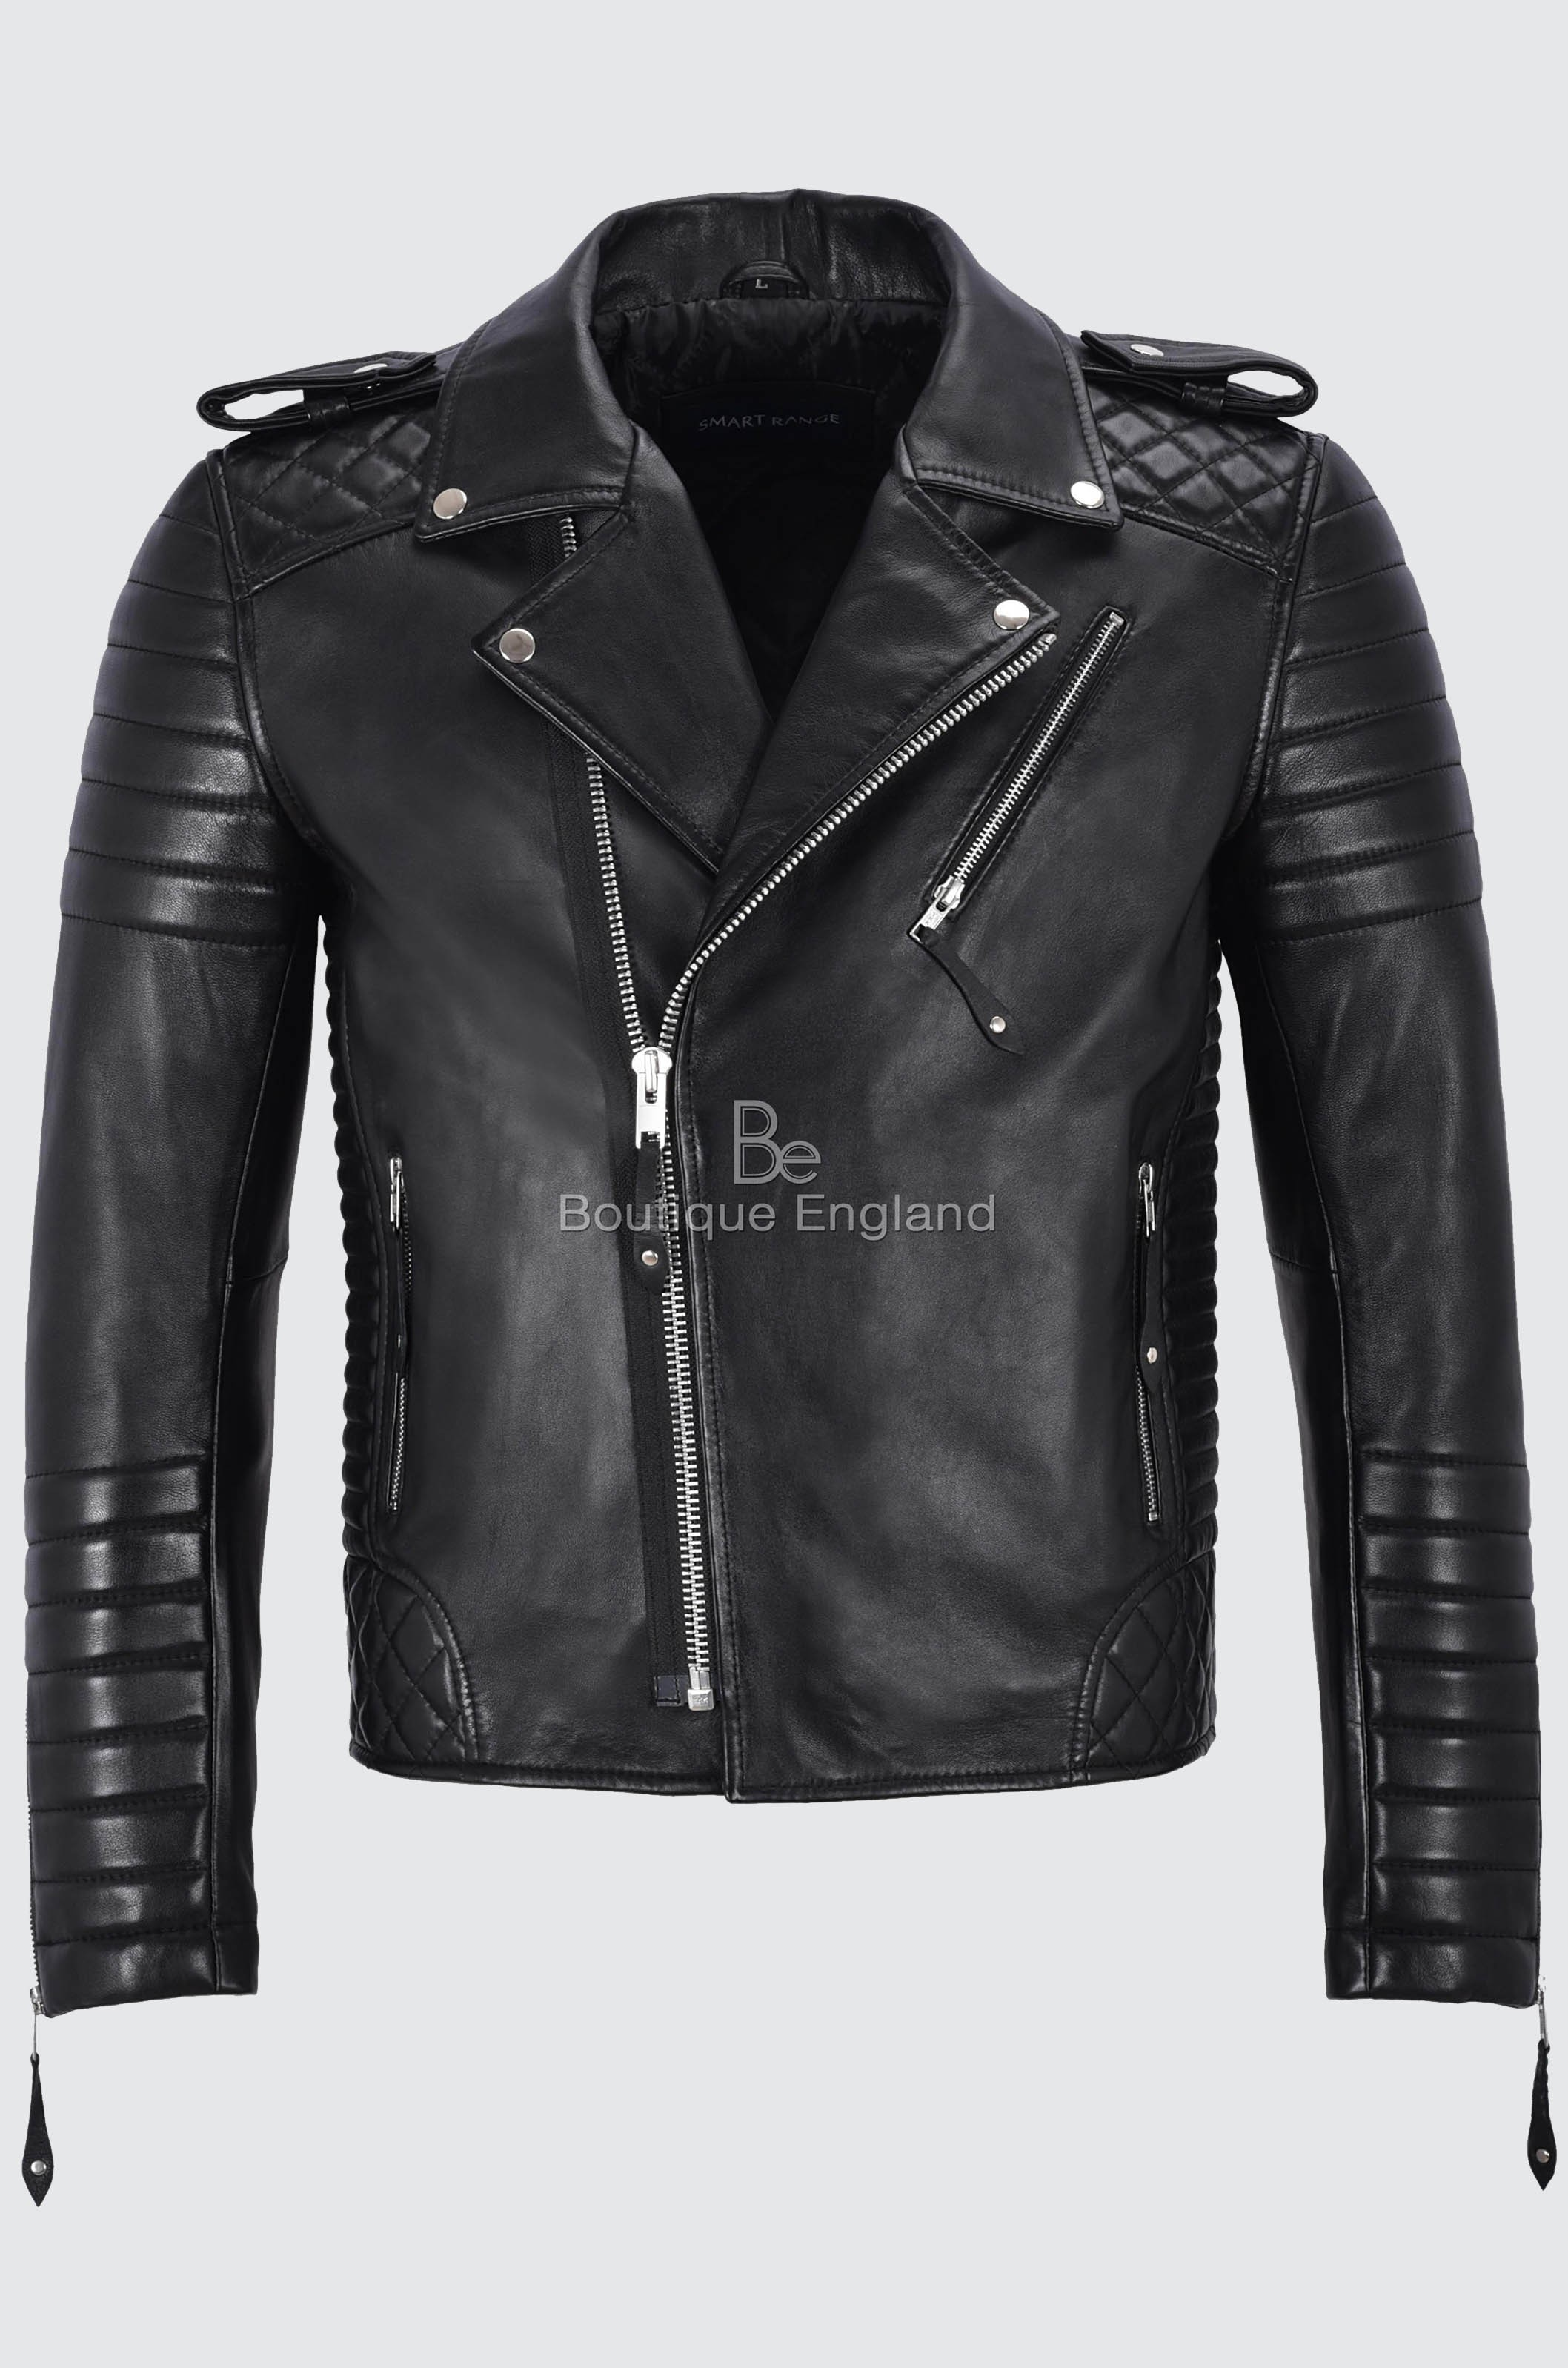 ecc8ca7b54c4fd Brando Men s Black Leather Jacket CLASSIC Quilted Soft Slim Fit ...